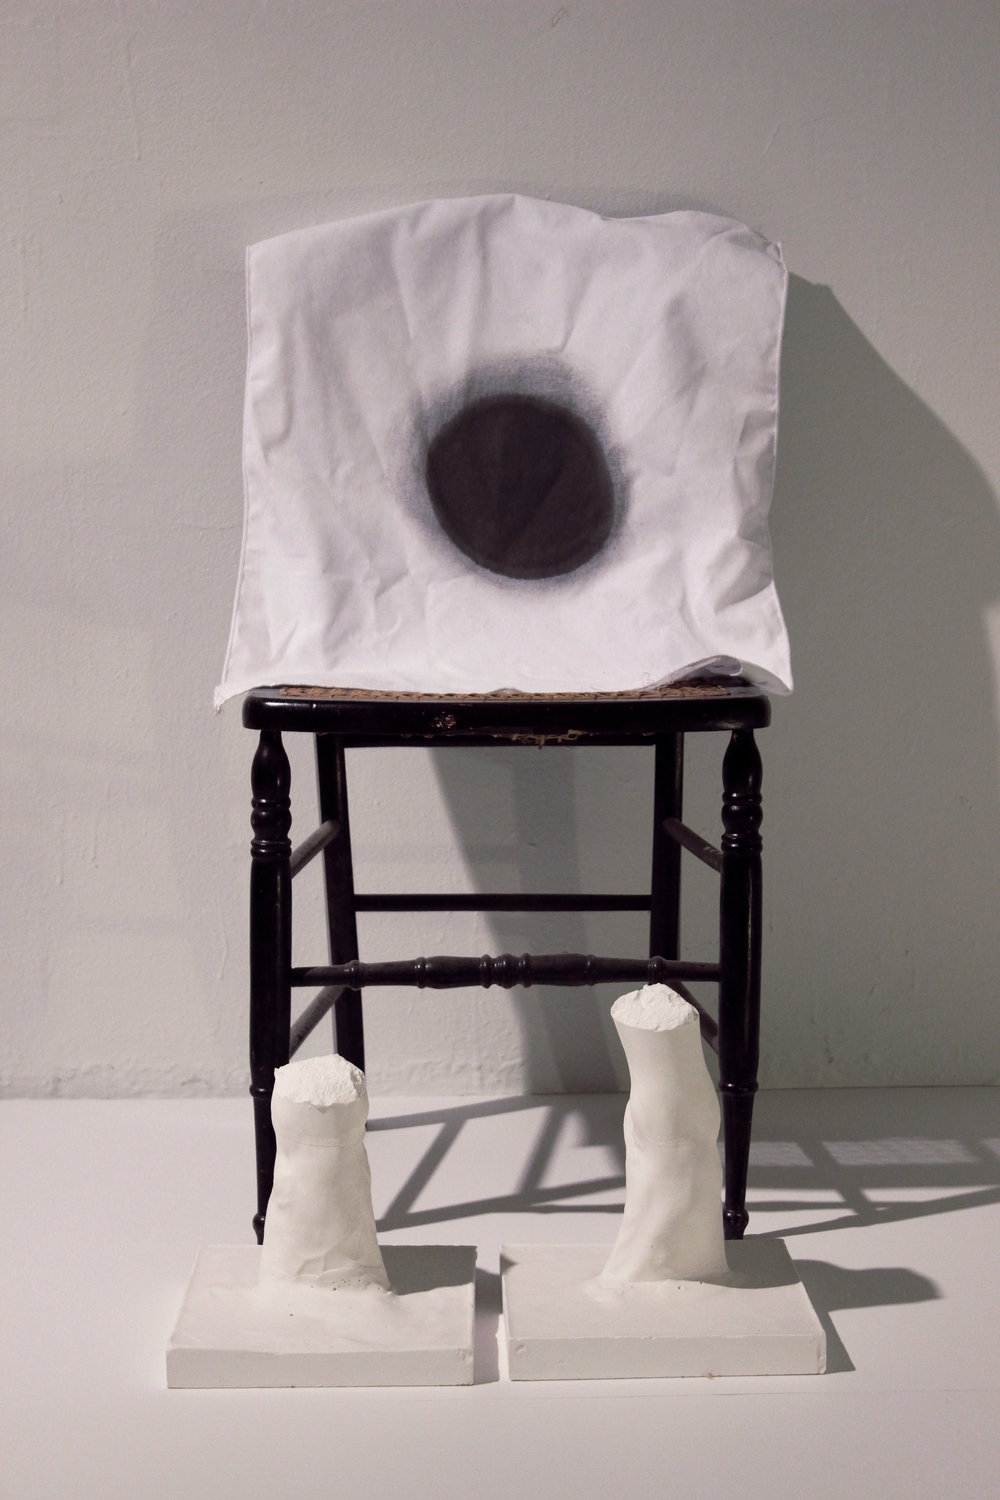 Plaster, Pillow Case, India Ink, Found Object. Dimensions Variable. 2013.